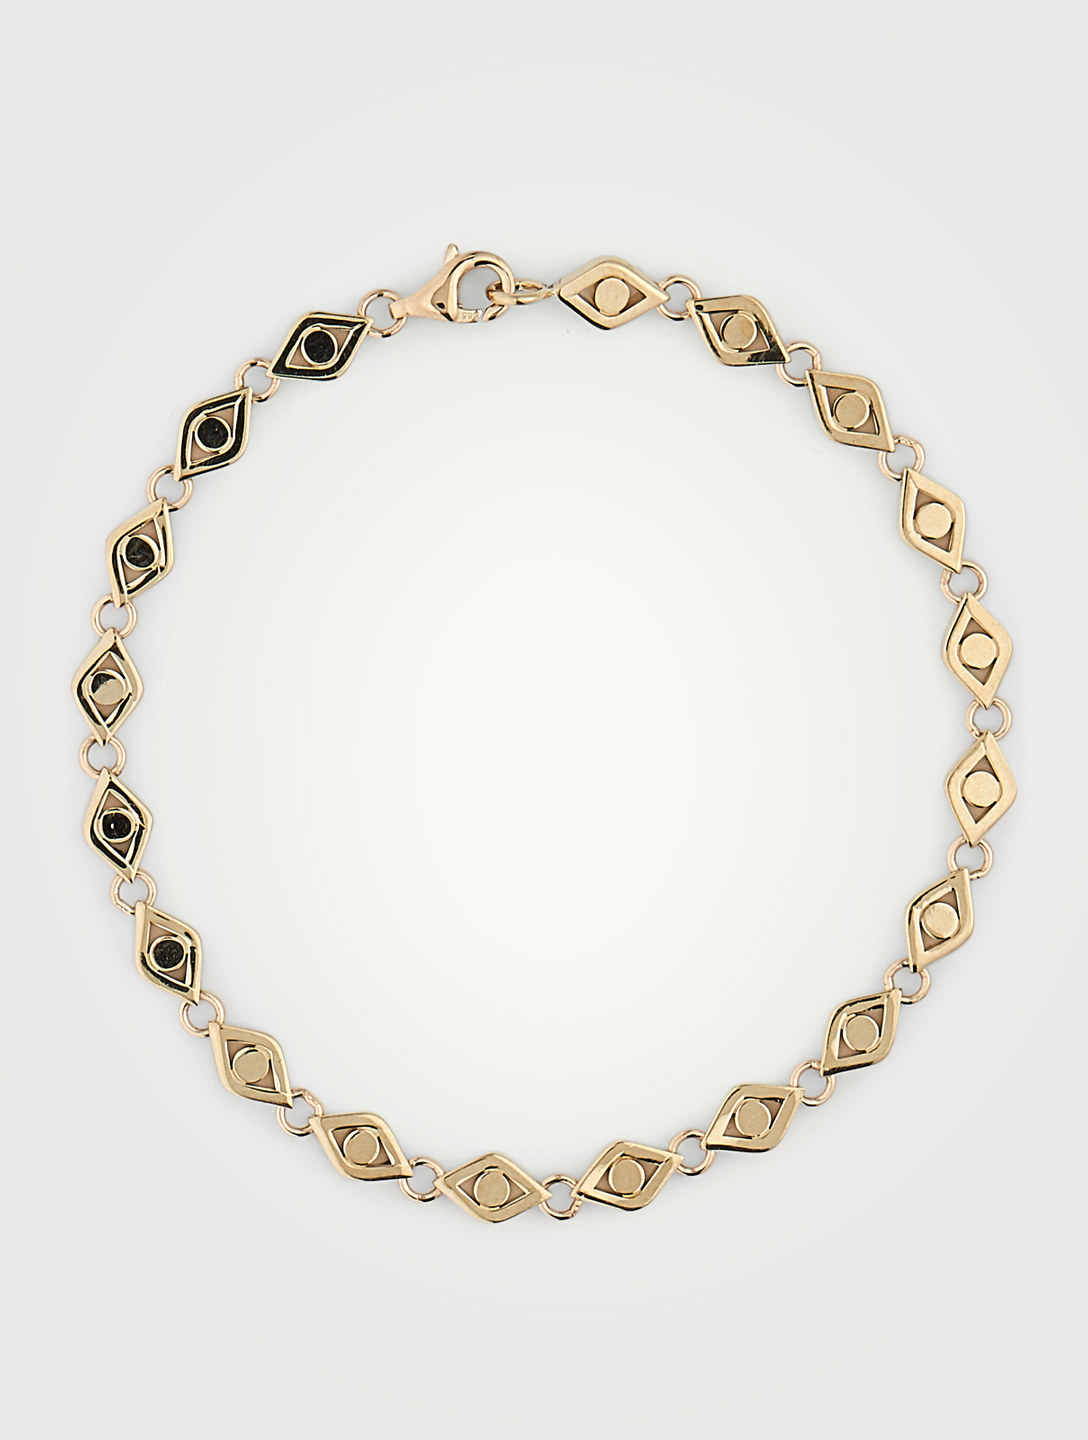 SYDNEY EVAN 14K Gold Evil Eye Link Bracelet Women's Metallic